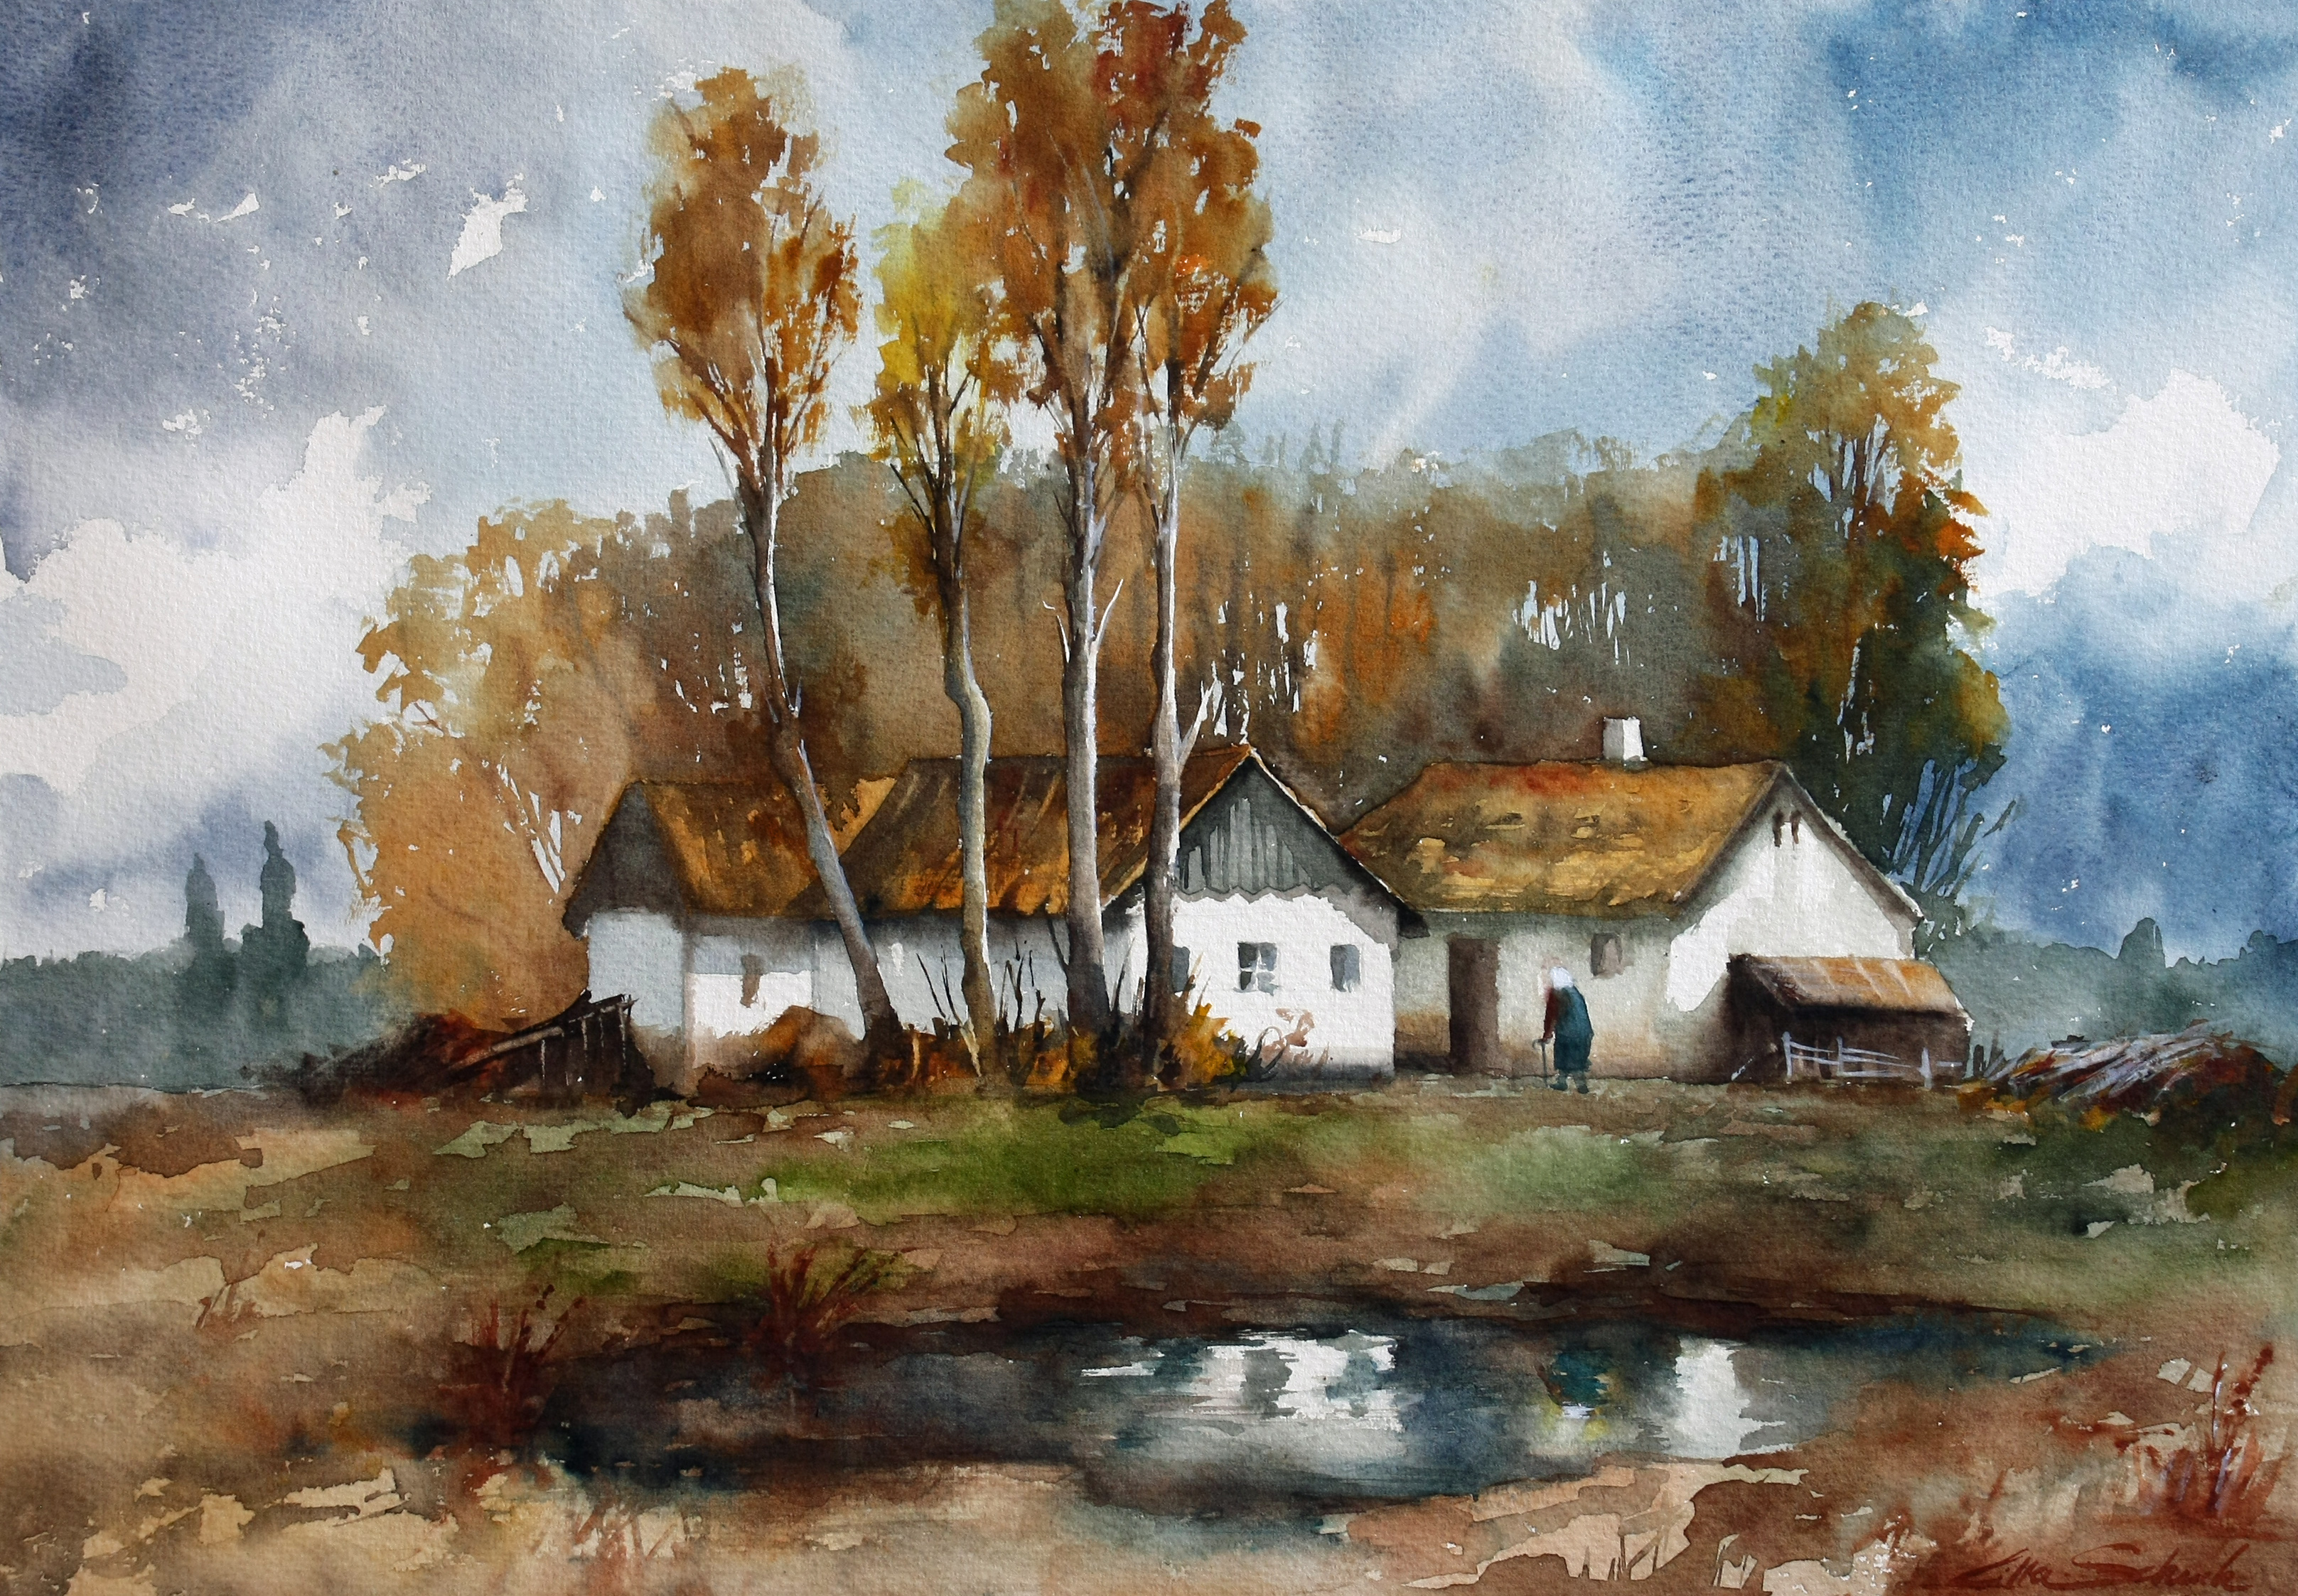 Grandmothers house - Watercolor paintings by Lilla Schuch